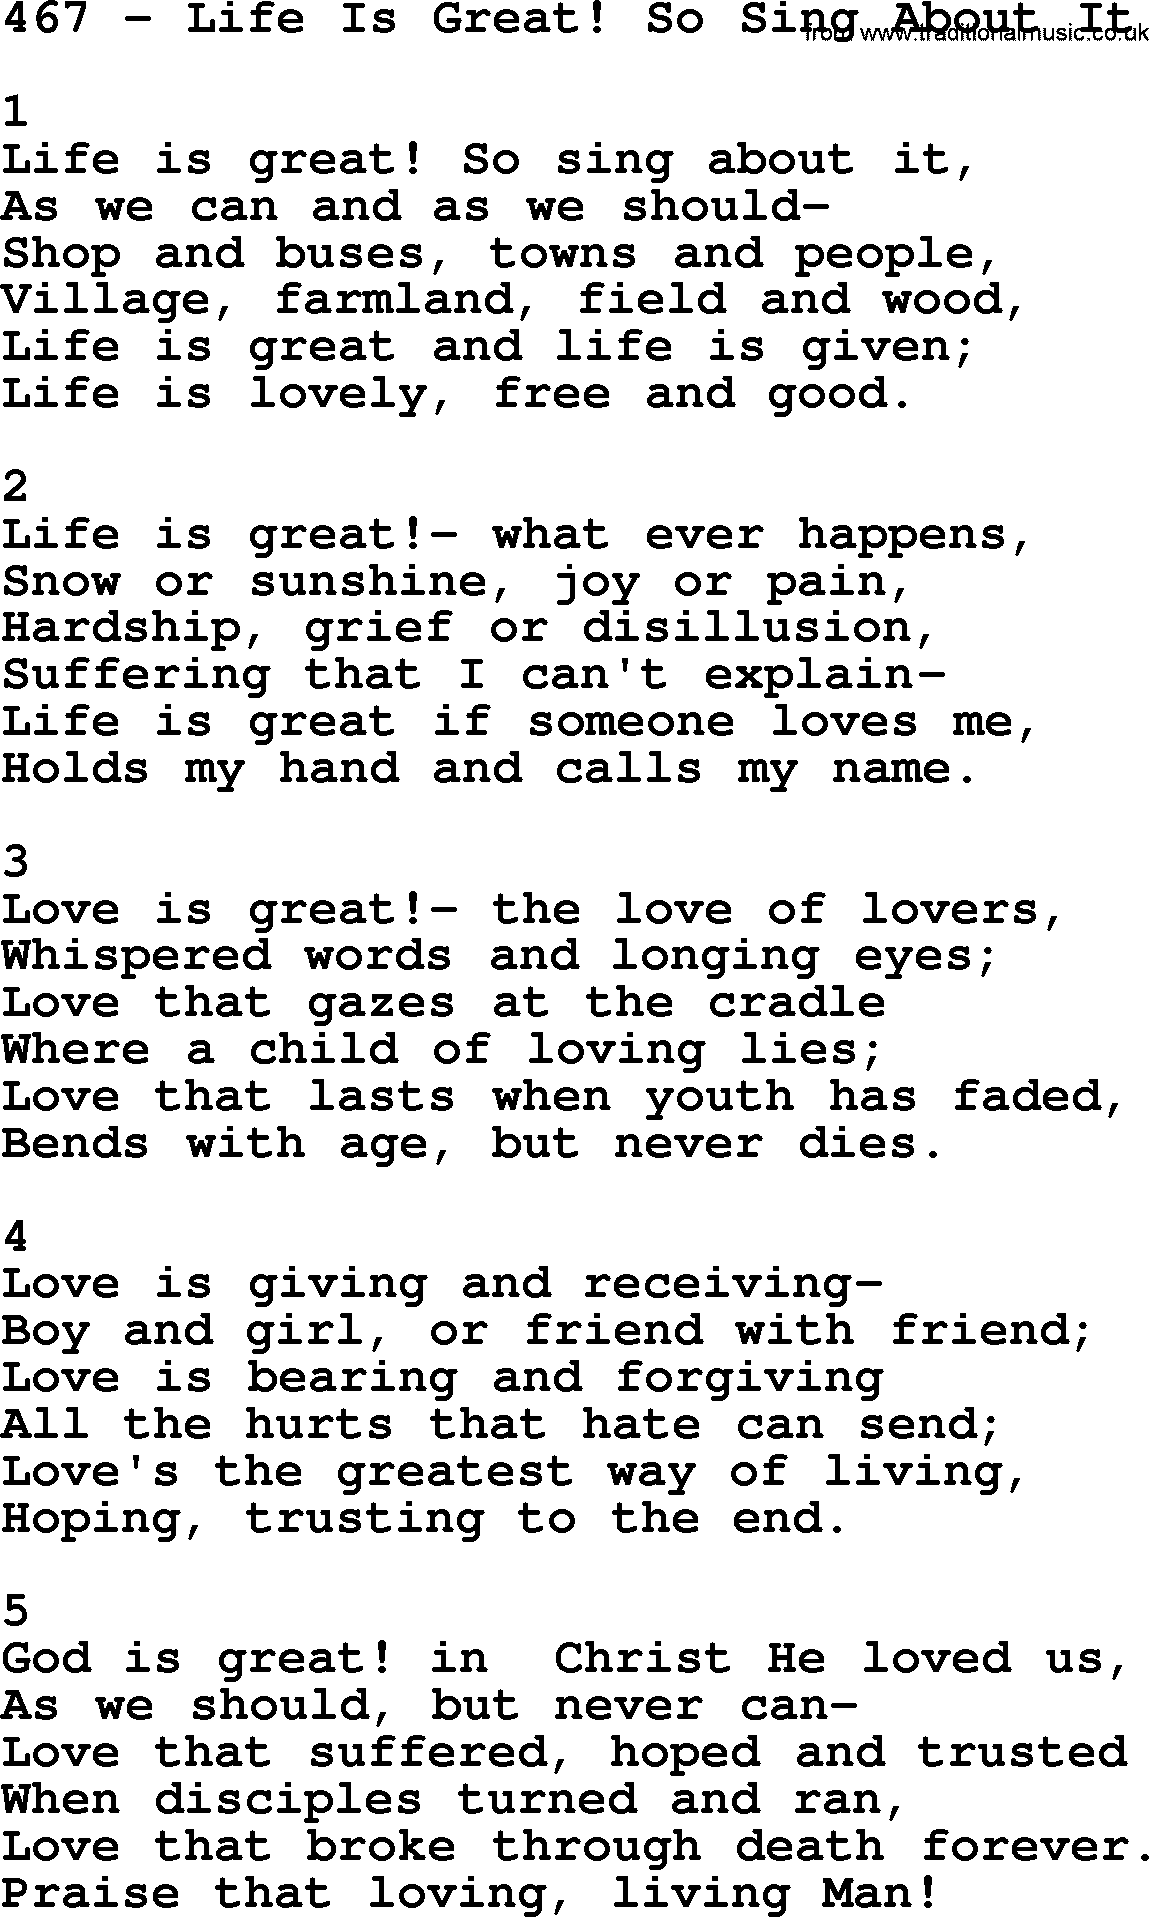 Adventist Hymnal, Song: 467-Life Is Great! So Sing About It